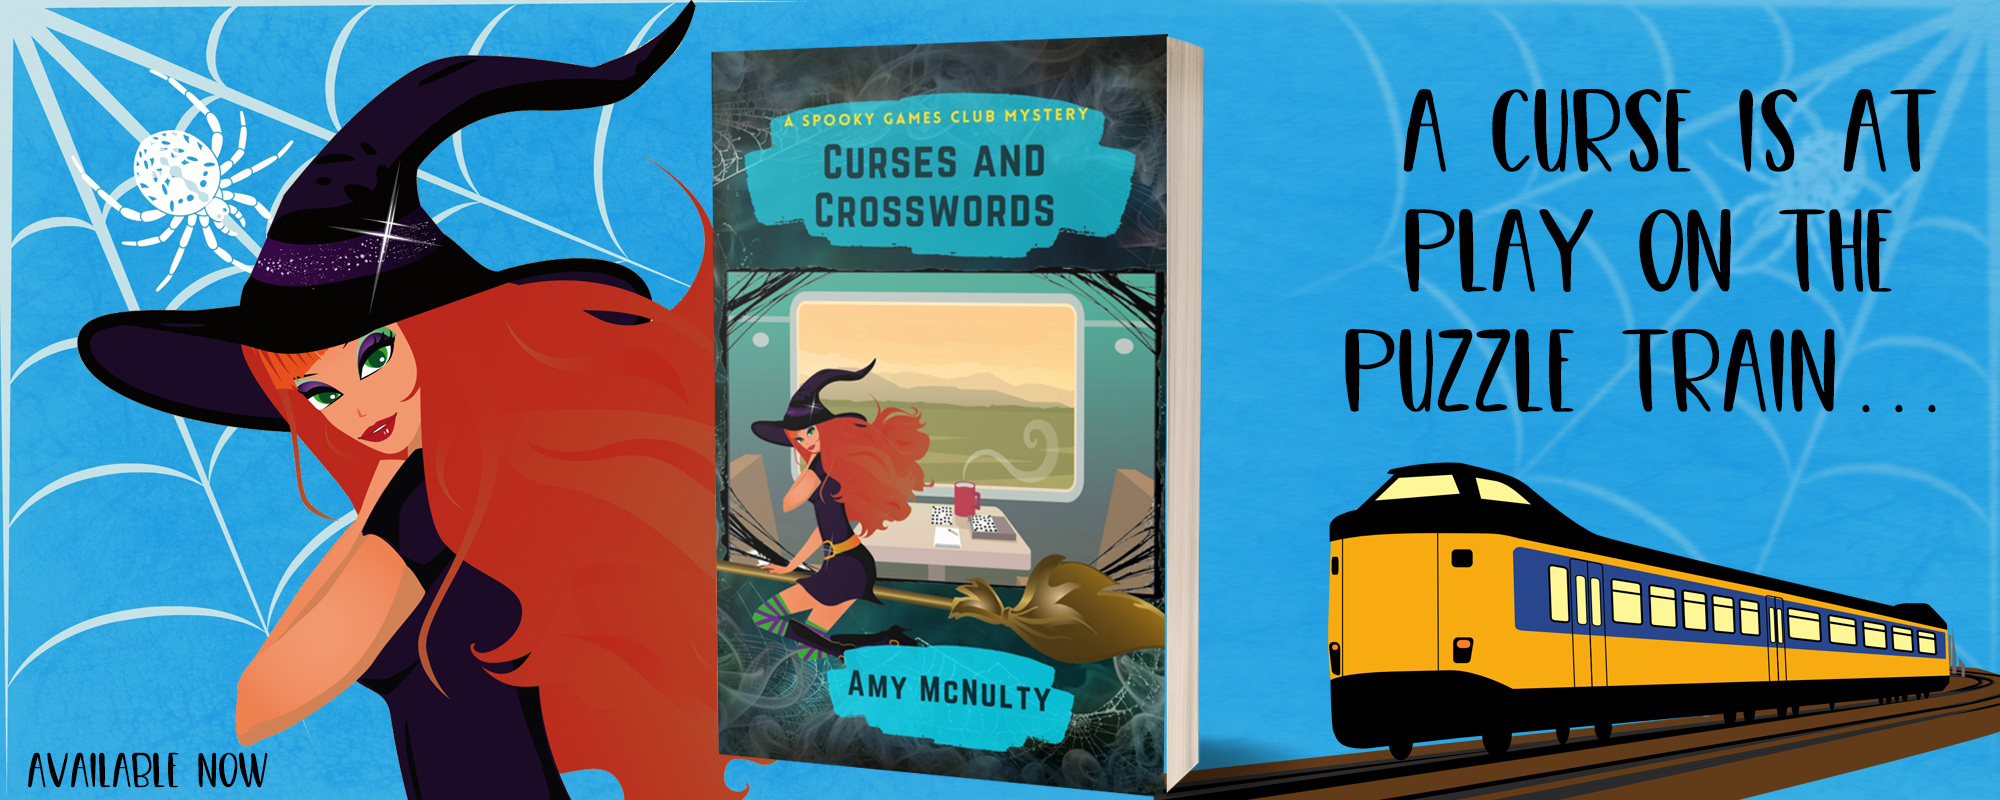 Curses and Crosswords by Amy McNulty, available now